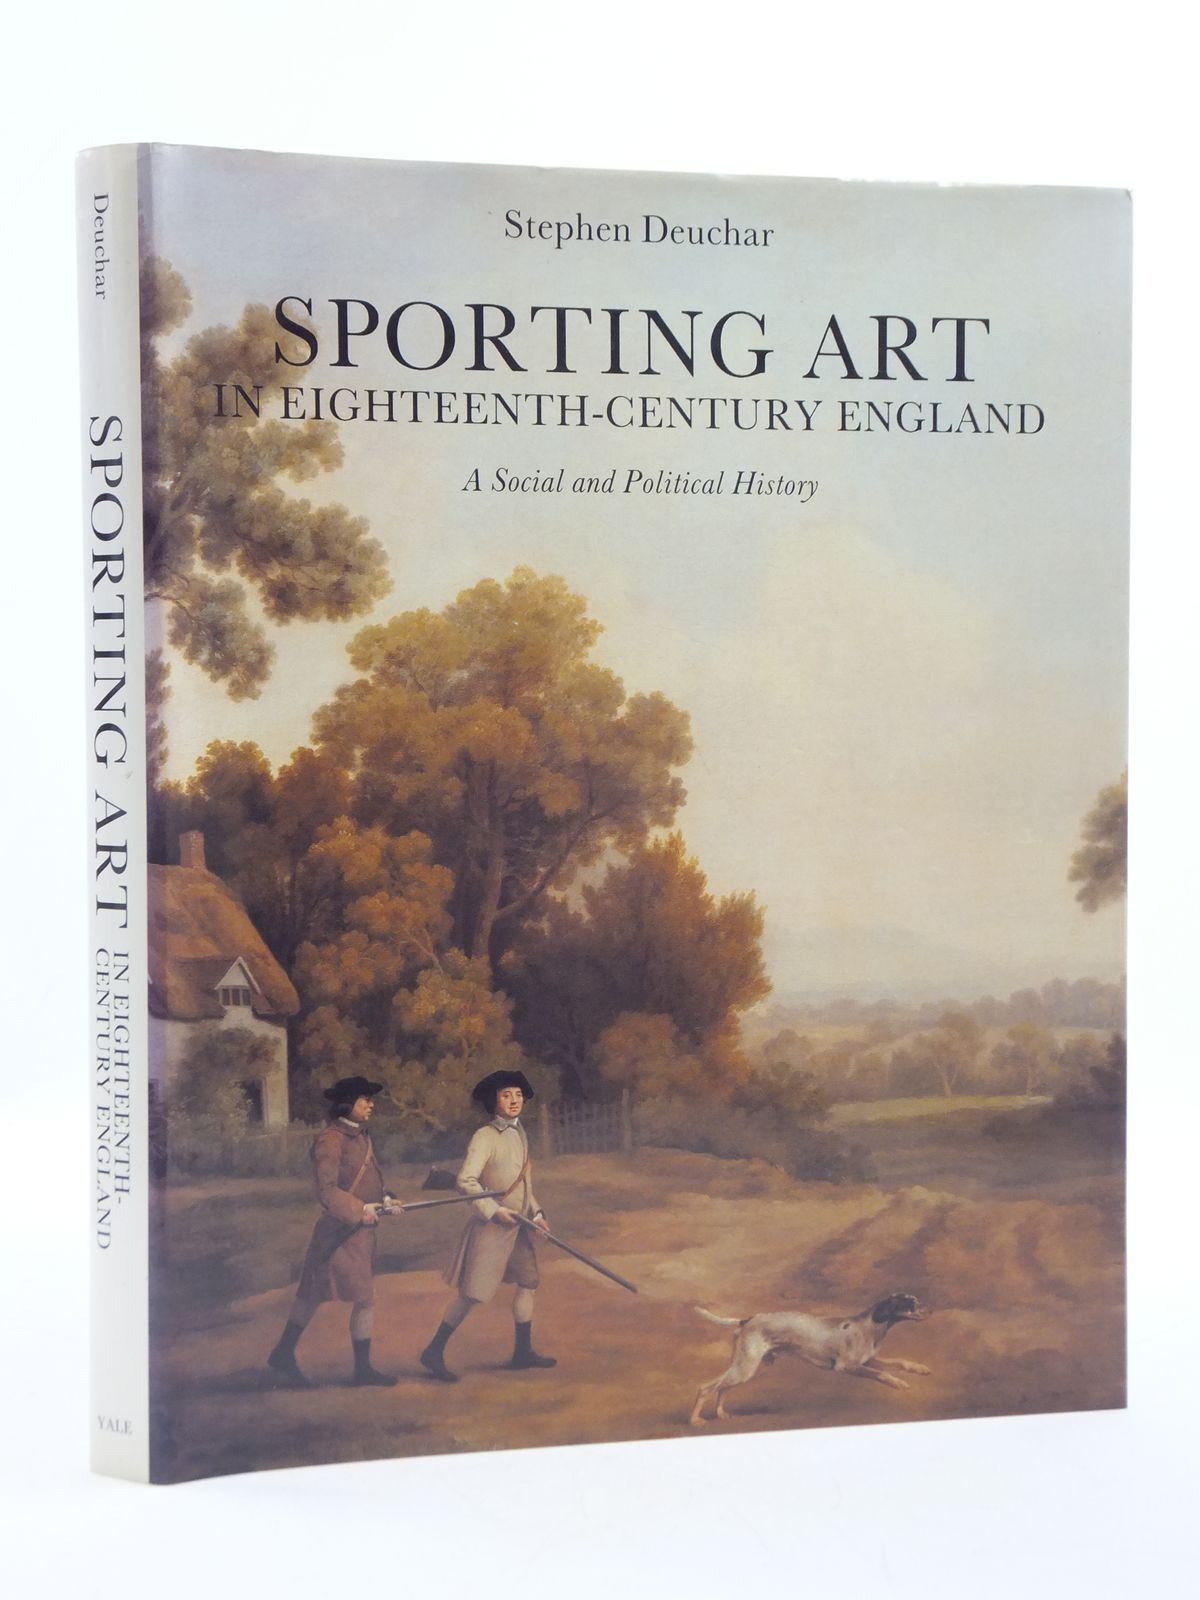 Photo of SPORTING ART IN EIGHTEENTH-CENTURY ENGLAND A SOCIAL AND POLITICAL HISTORY written by Deuchar, Stephen published by Yale University Press (STOCK CODE: 1604857)  for sale by Stella & Rose's Books